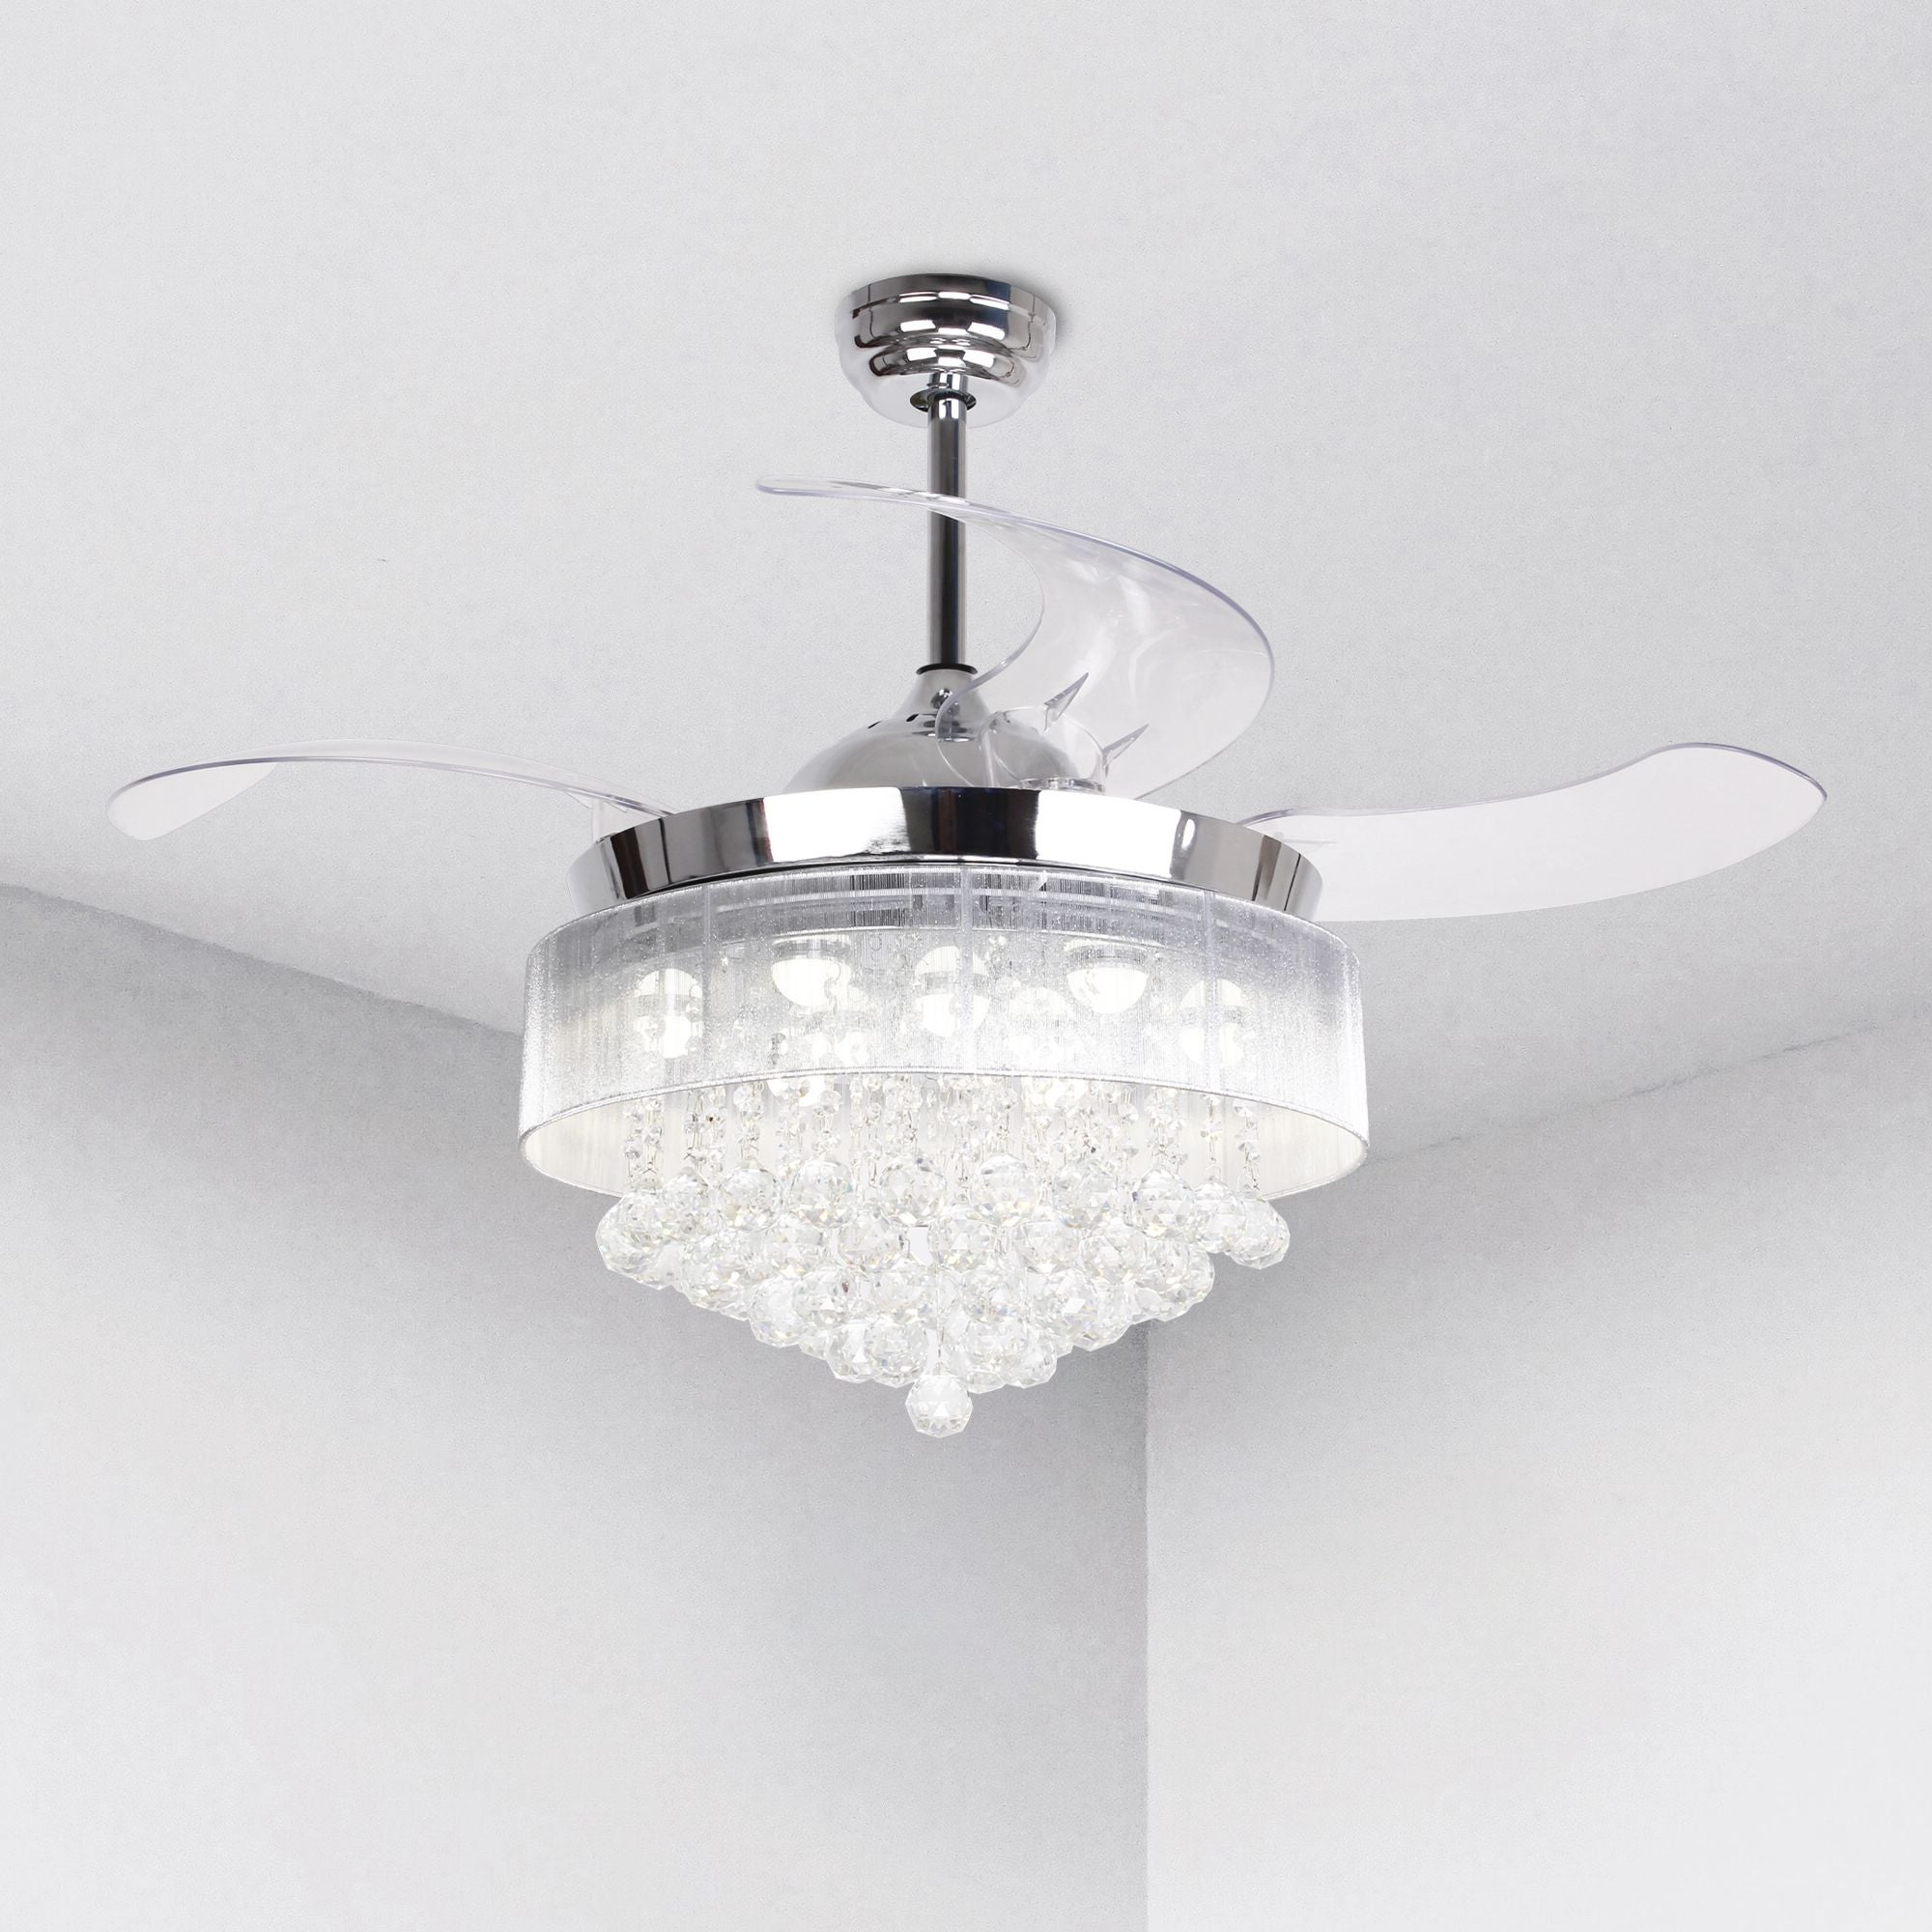 Shop Modern 42.5-inch Foldable 4-Blades LED Ceiling Fans Crystal ...